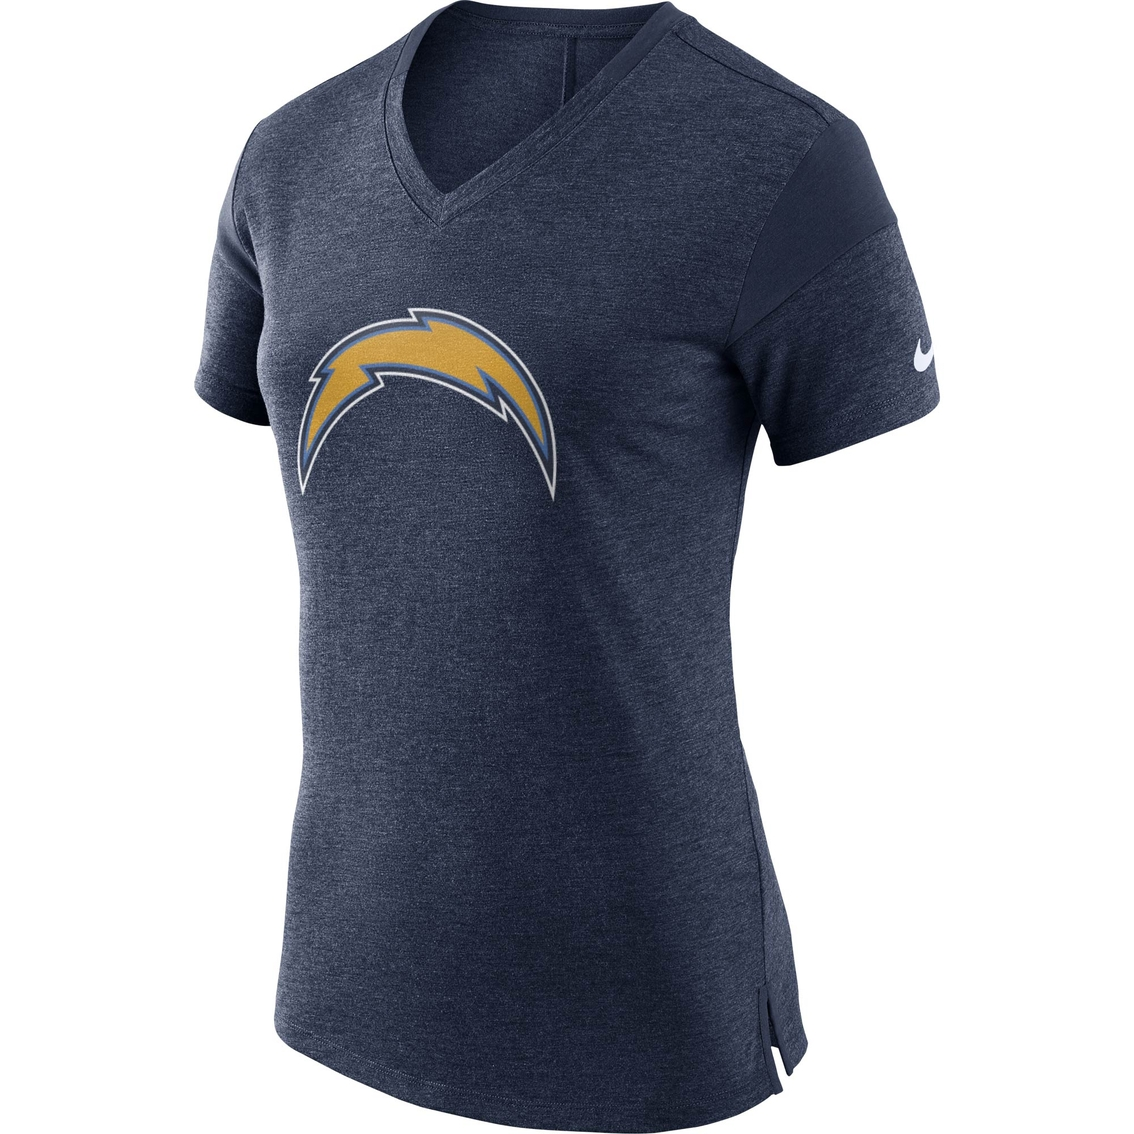 7e308000 Nike Nfl Los Angeles Chargers Women's Fan Tee | Shirts | Sports ...